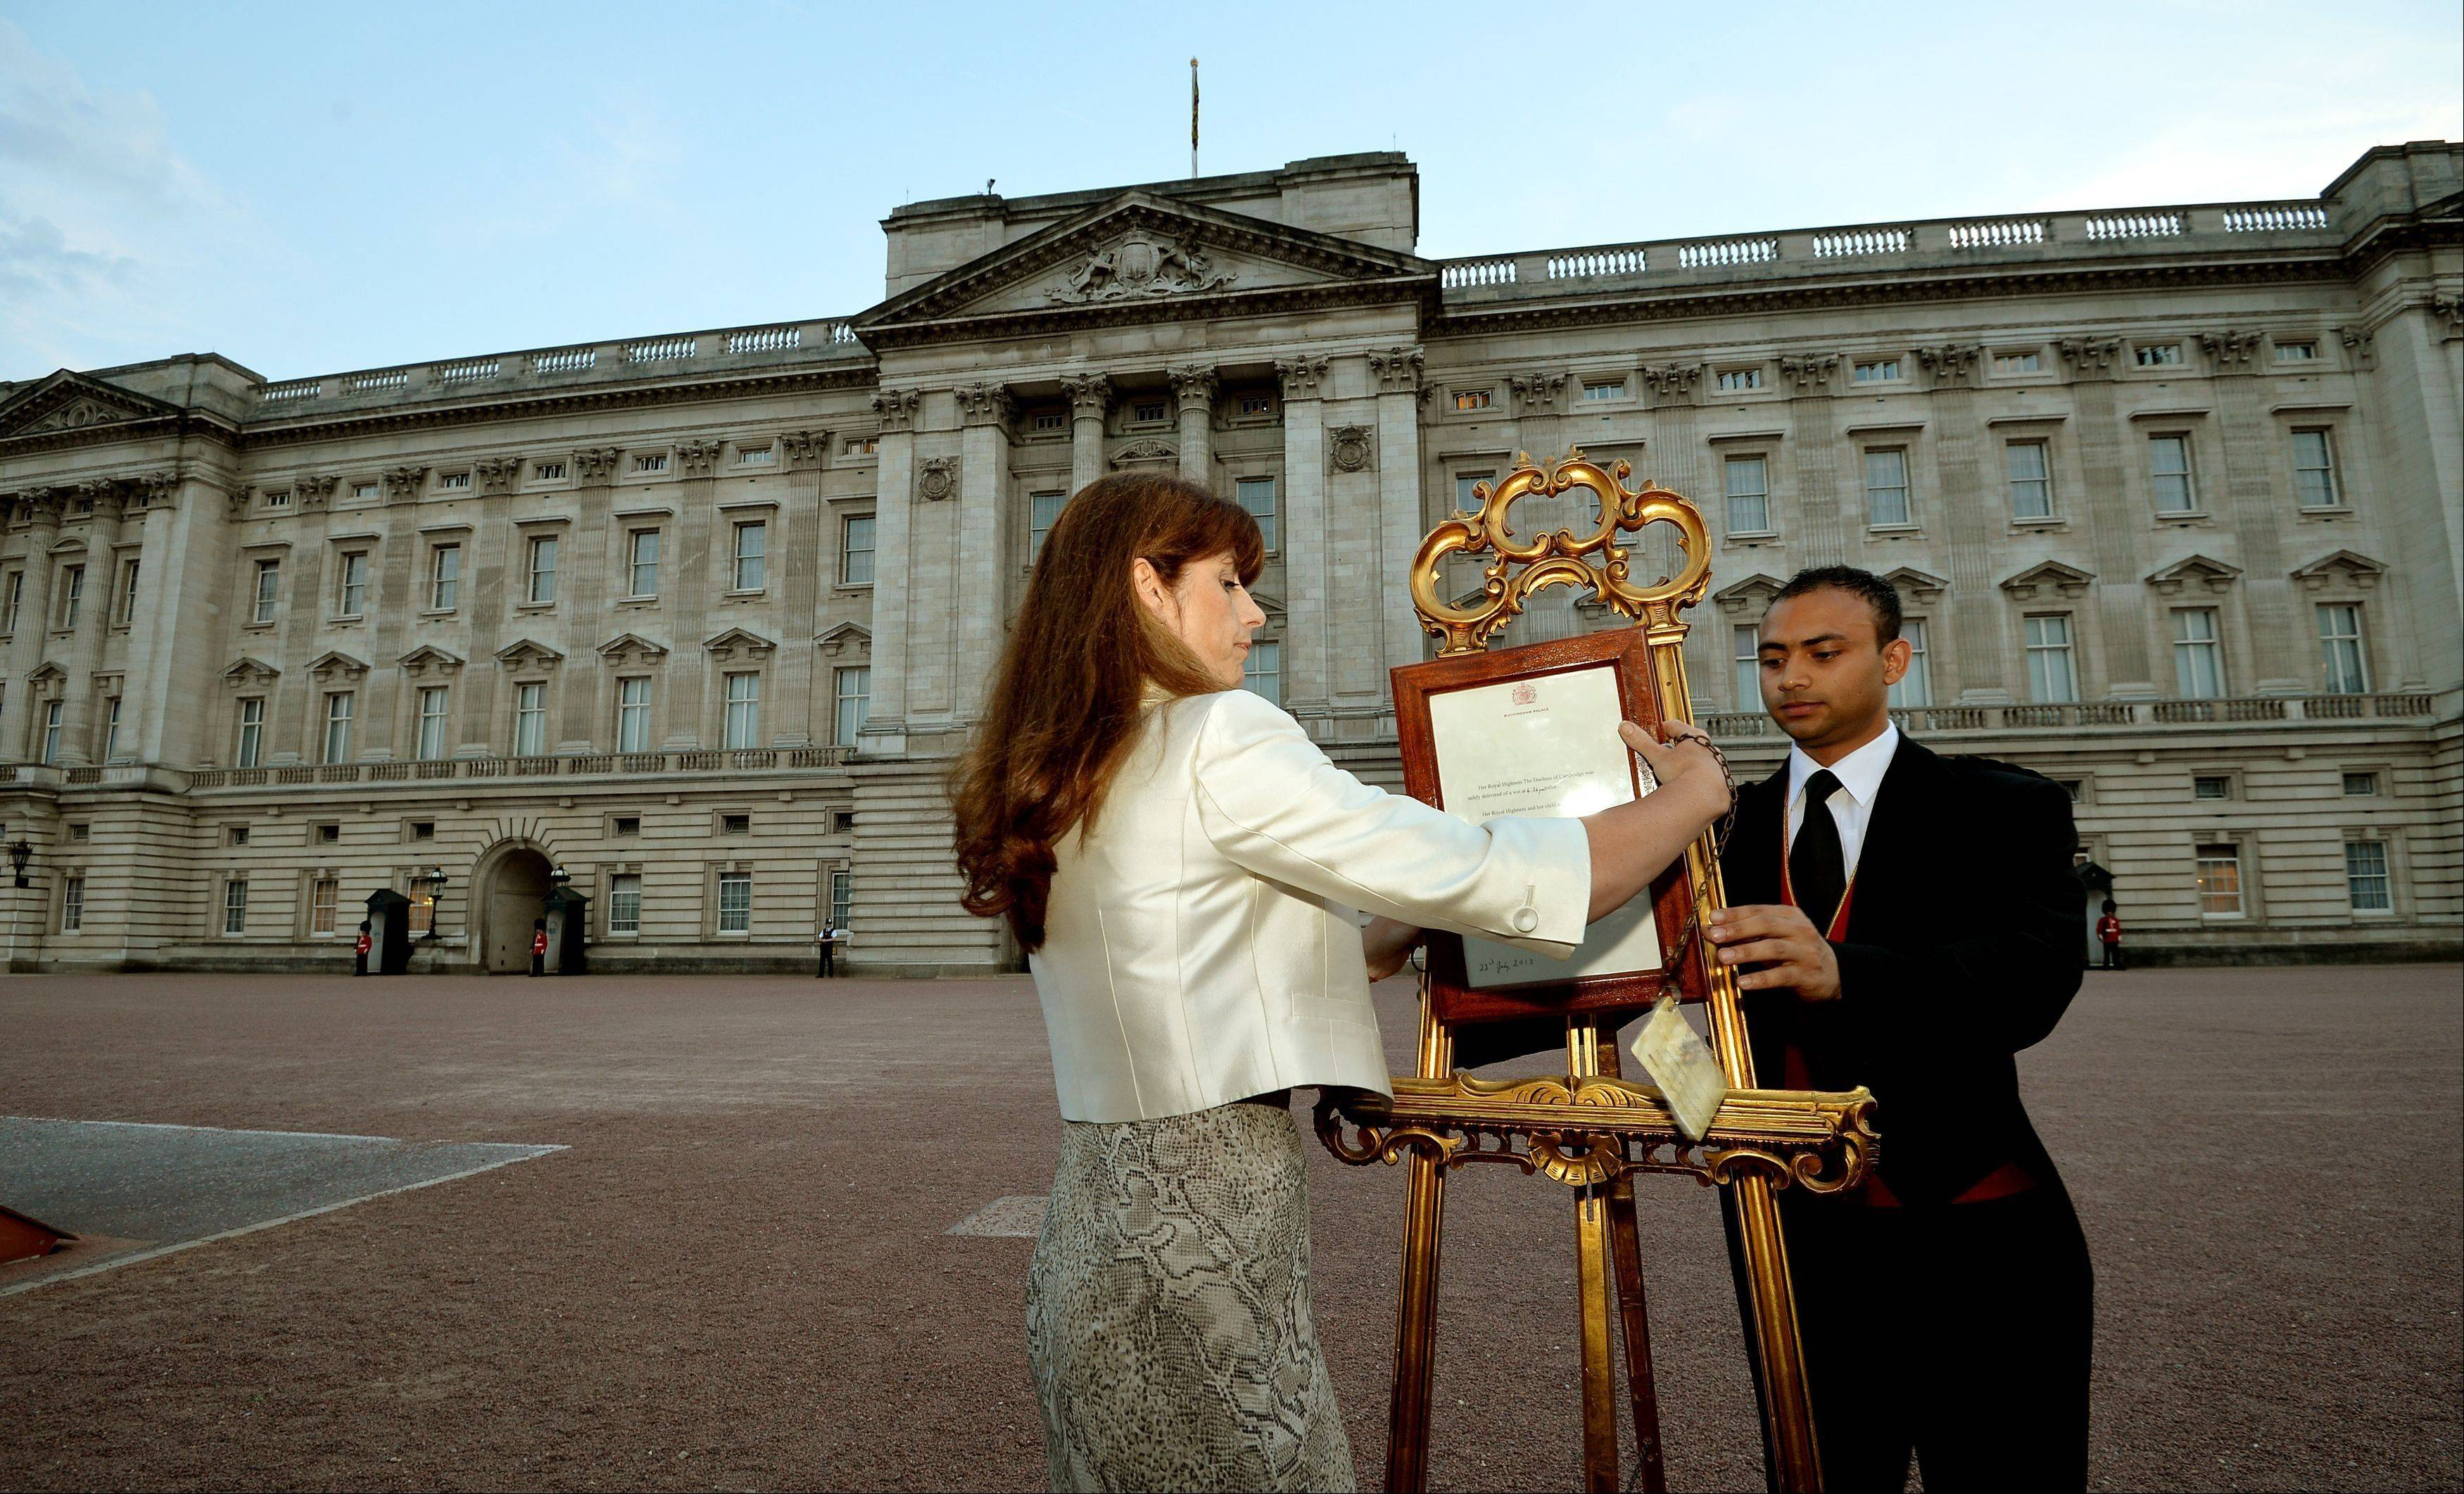 The Queen's Press Secretary Ailsa Anderson with Badar Azim, a footman, places an official document to announce the birth of a baby boy, at 4.24pm to the William and Kate, the Duke and Duchess of Cambridge at St Mary's Hospital, in the forecourt of Buckingham Palace in London Monday July 22, 2013.